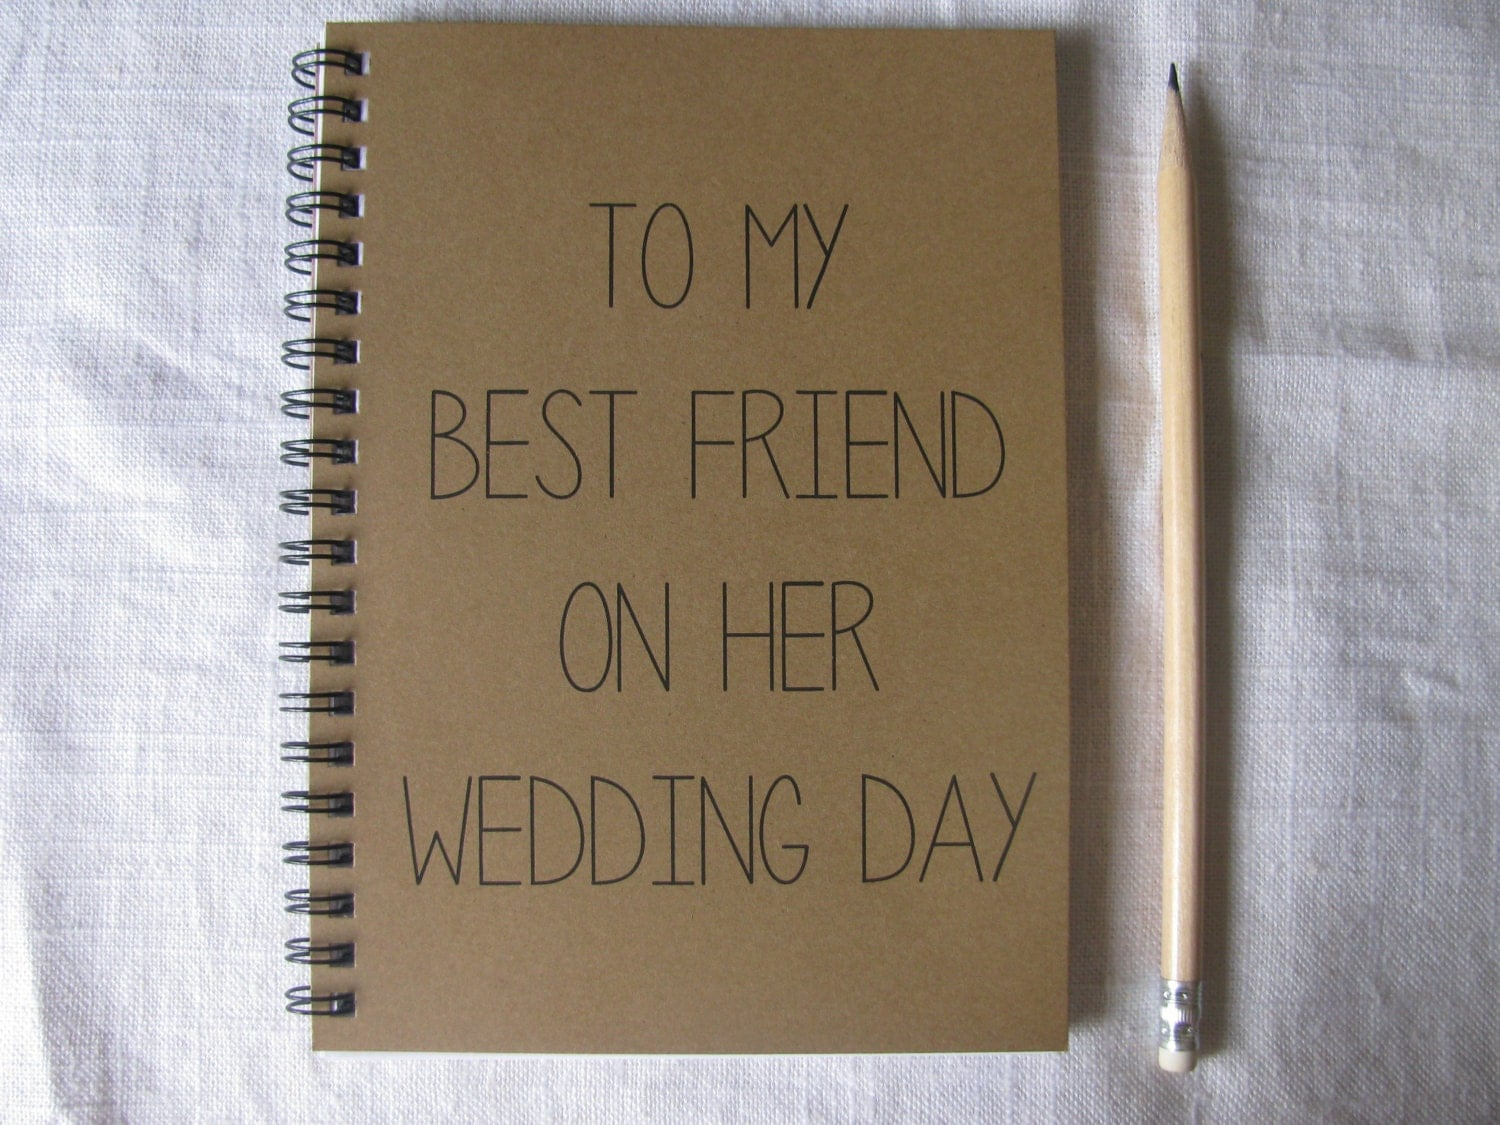 Wedding Gift Ideas For Bride And Groom From Friends: To My Best Friend On Her Wedding Day 5 X 7 By JournalingJane